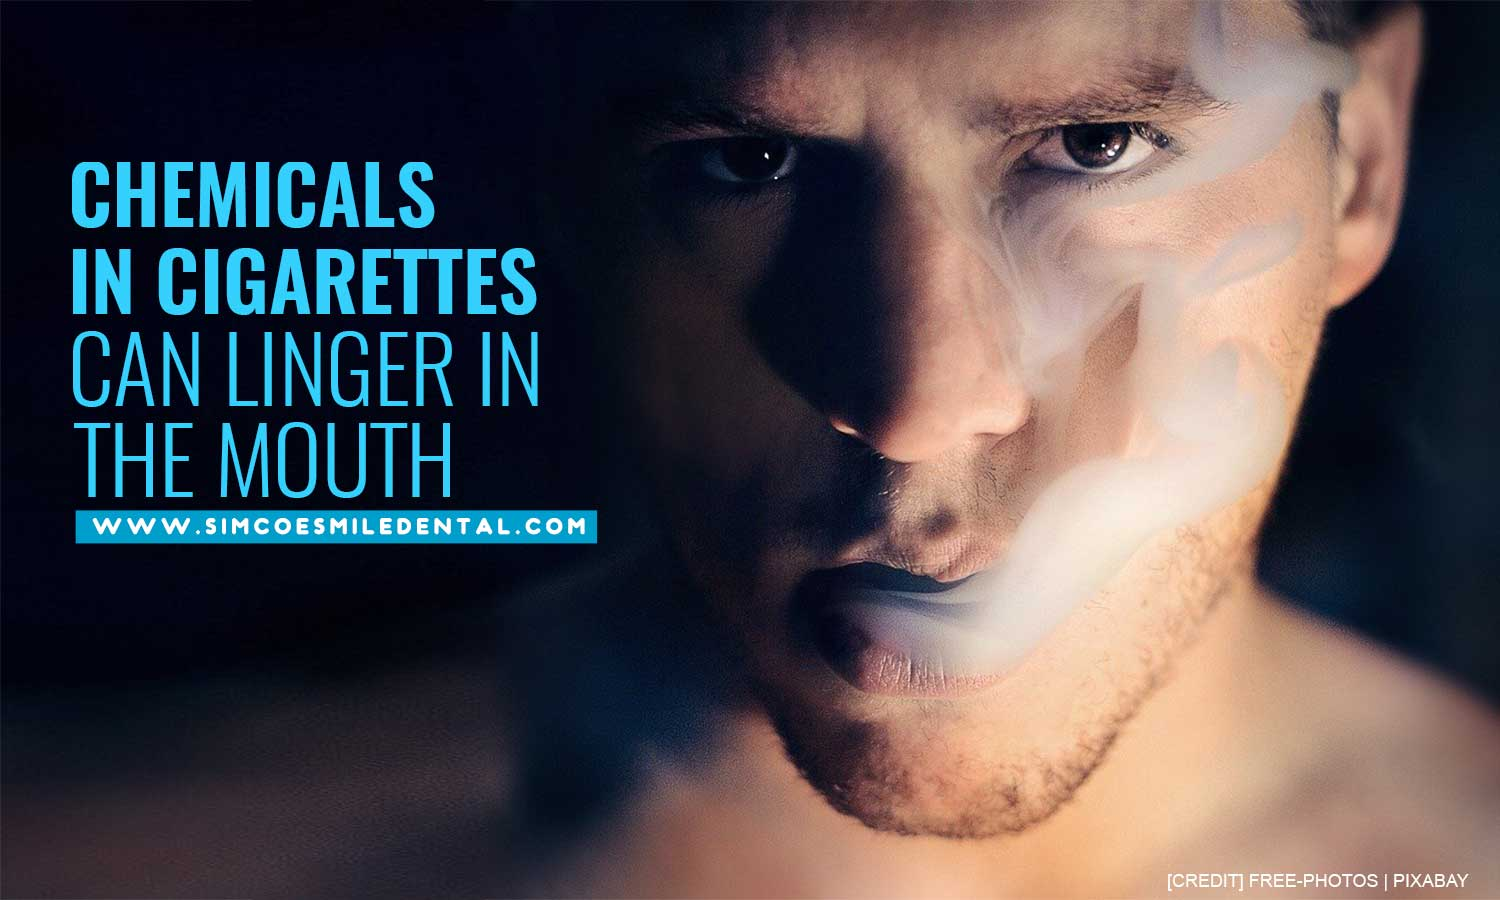 Chemicals-in-cigarettes-can-linger-in-the-mouth Halitosis and Your Oral Health